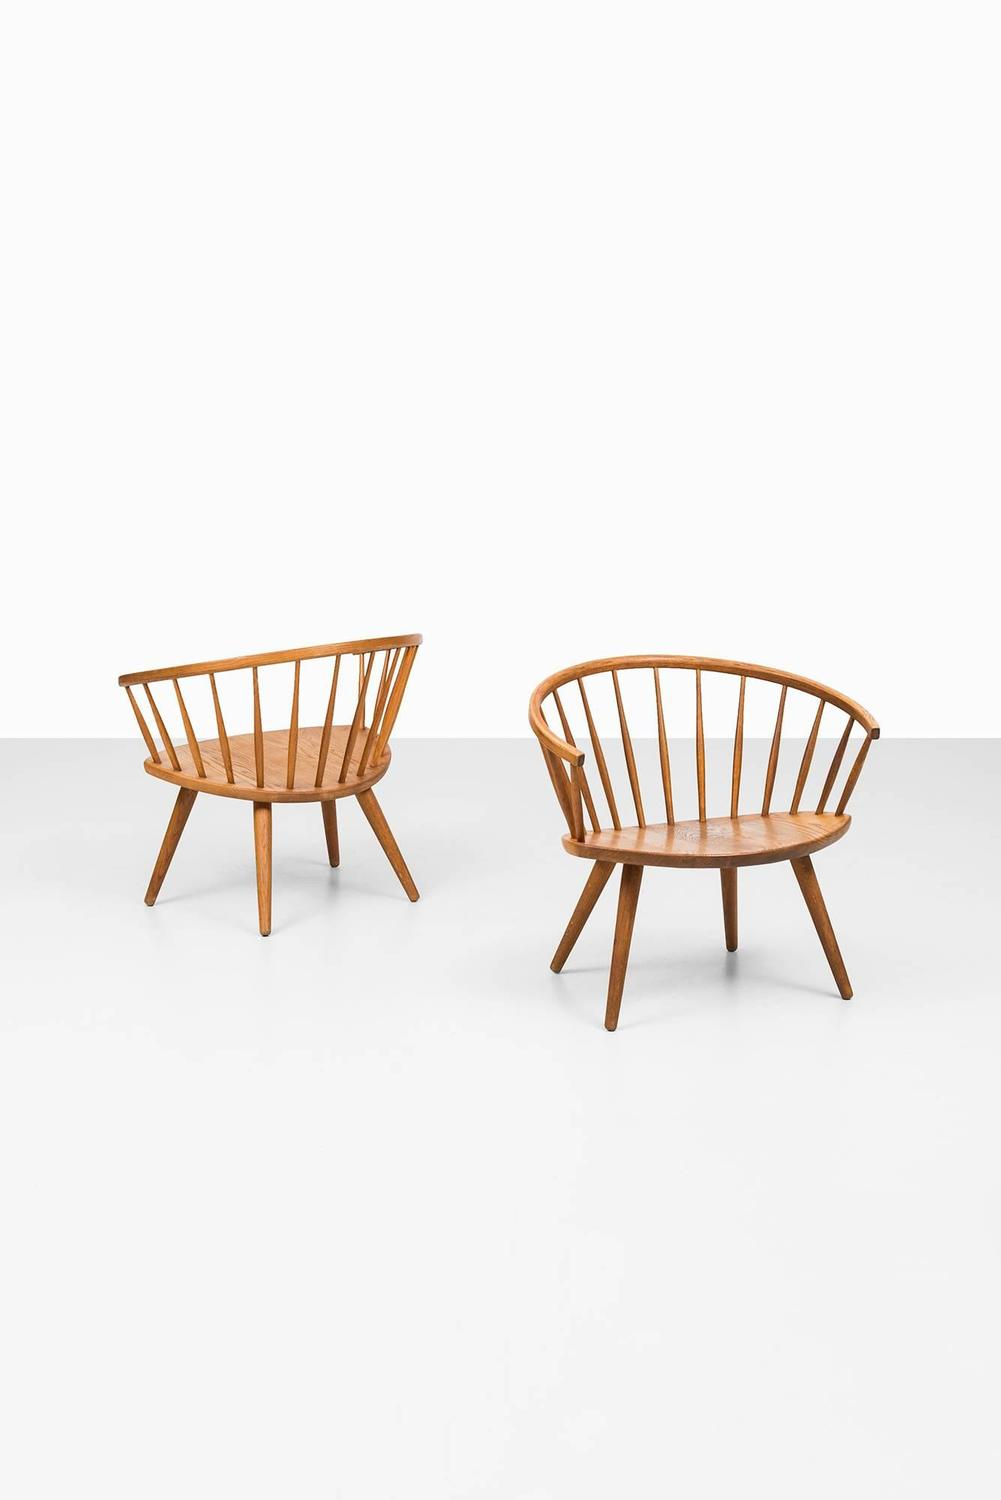 Yngve Ekström Easy Chairs Model Arka by Stolab in Sweden at 1stdibs